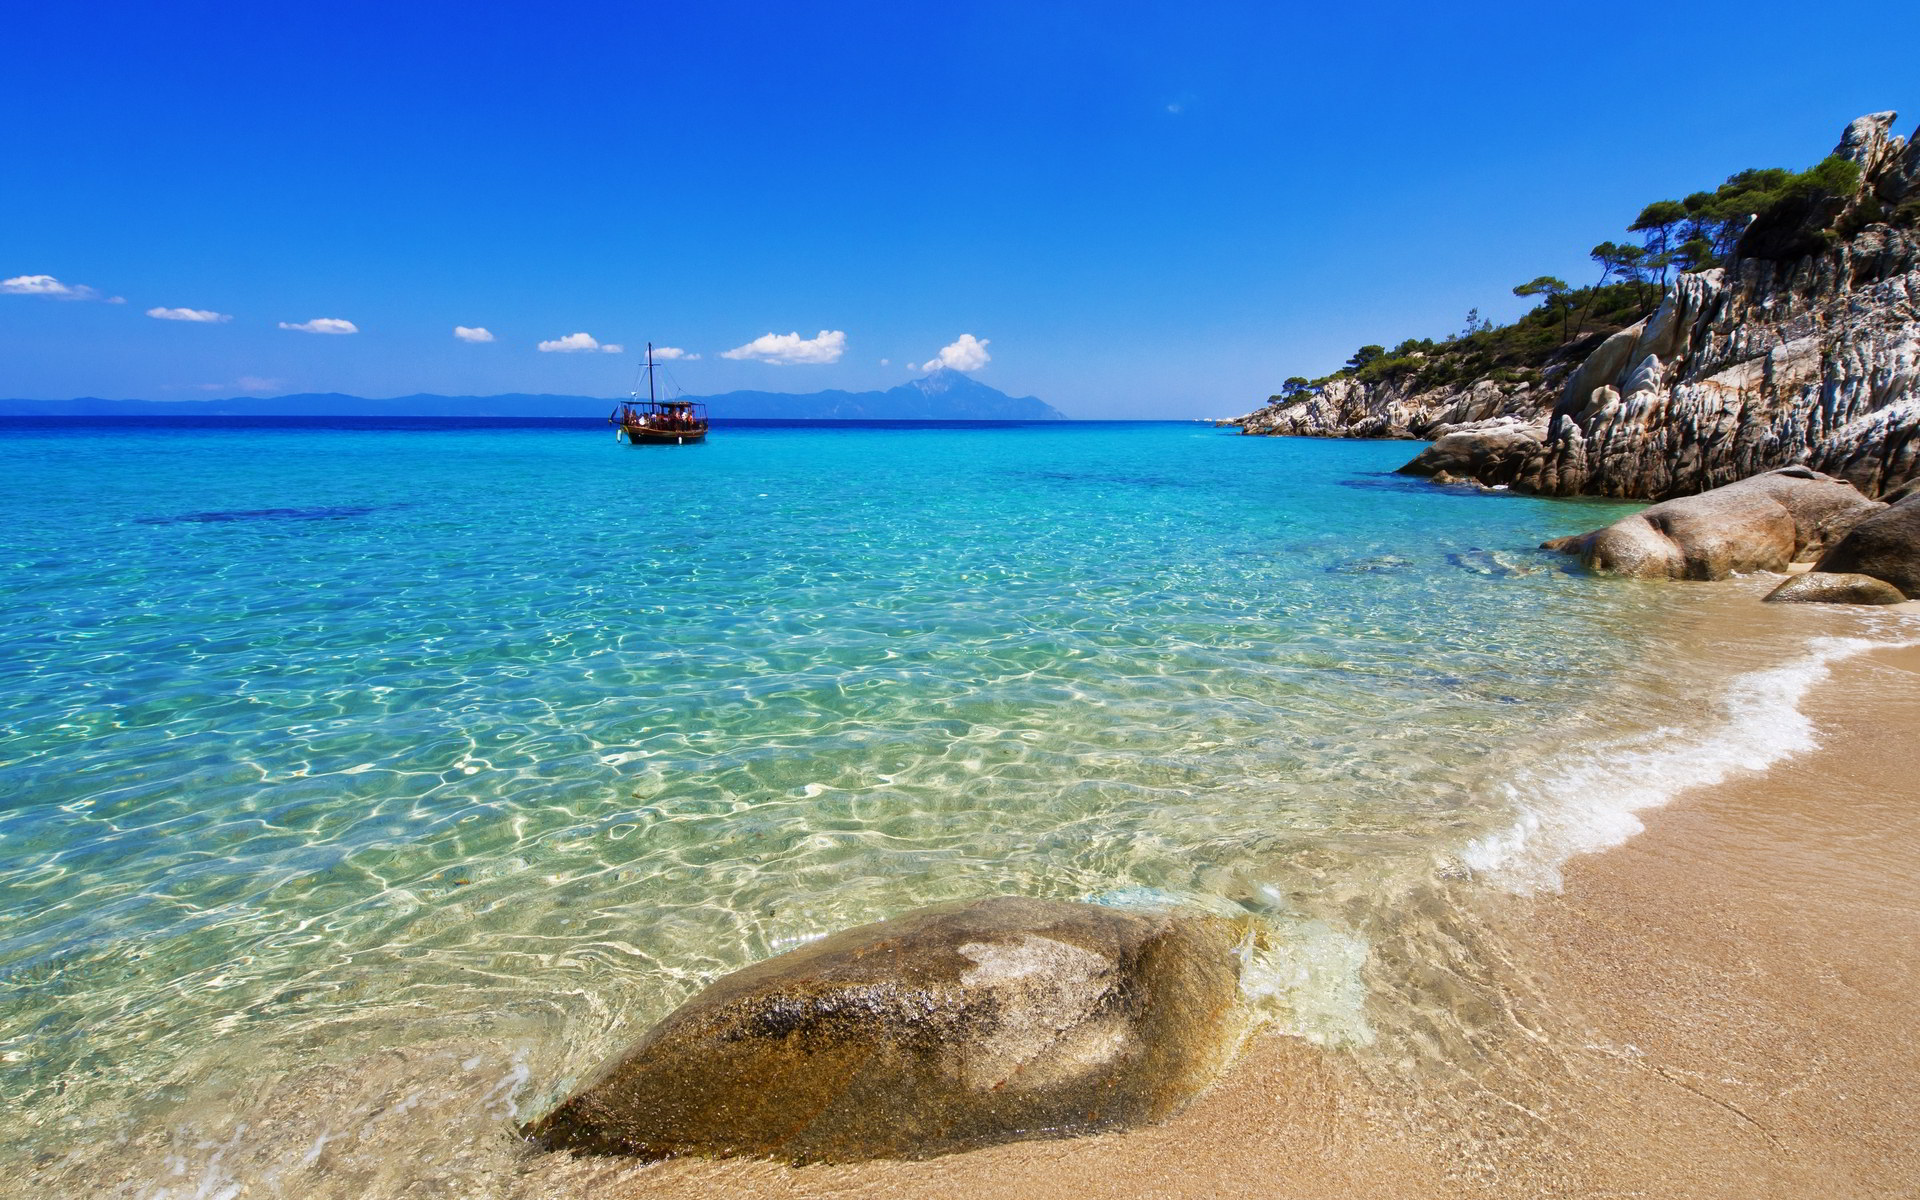 1920Paradise bay beach  Untouched nature abstract archipelago in seashore with rocks in water on peninsula Halkidiki.jpg